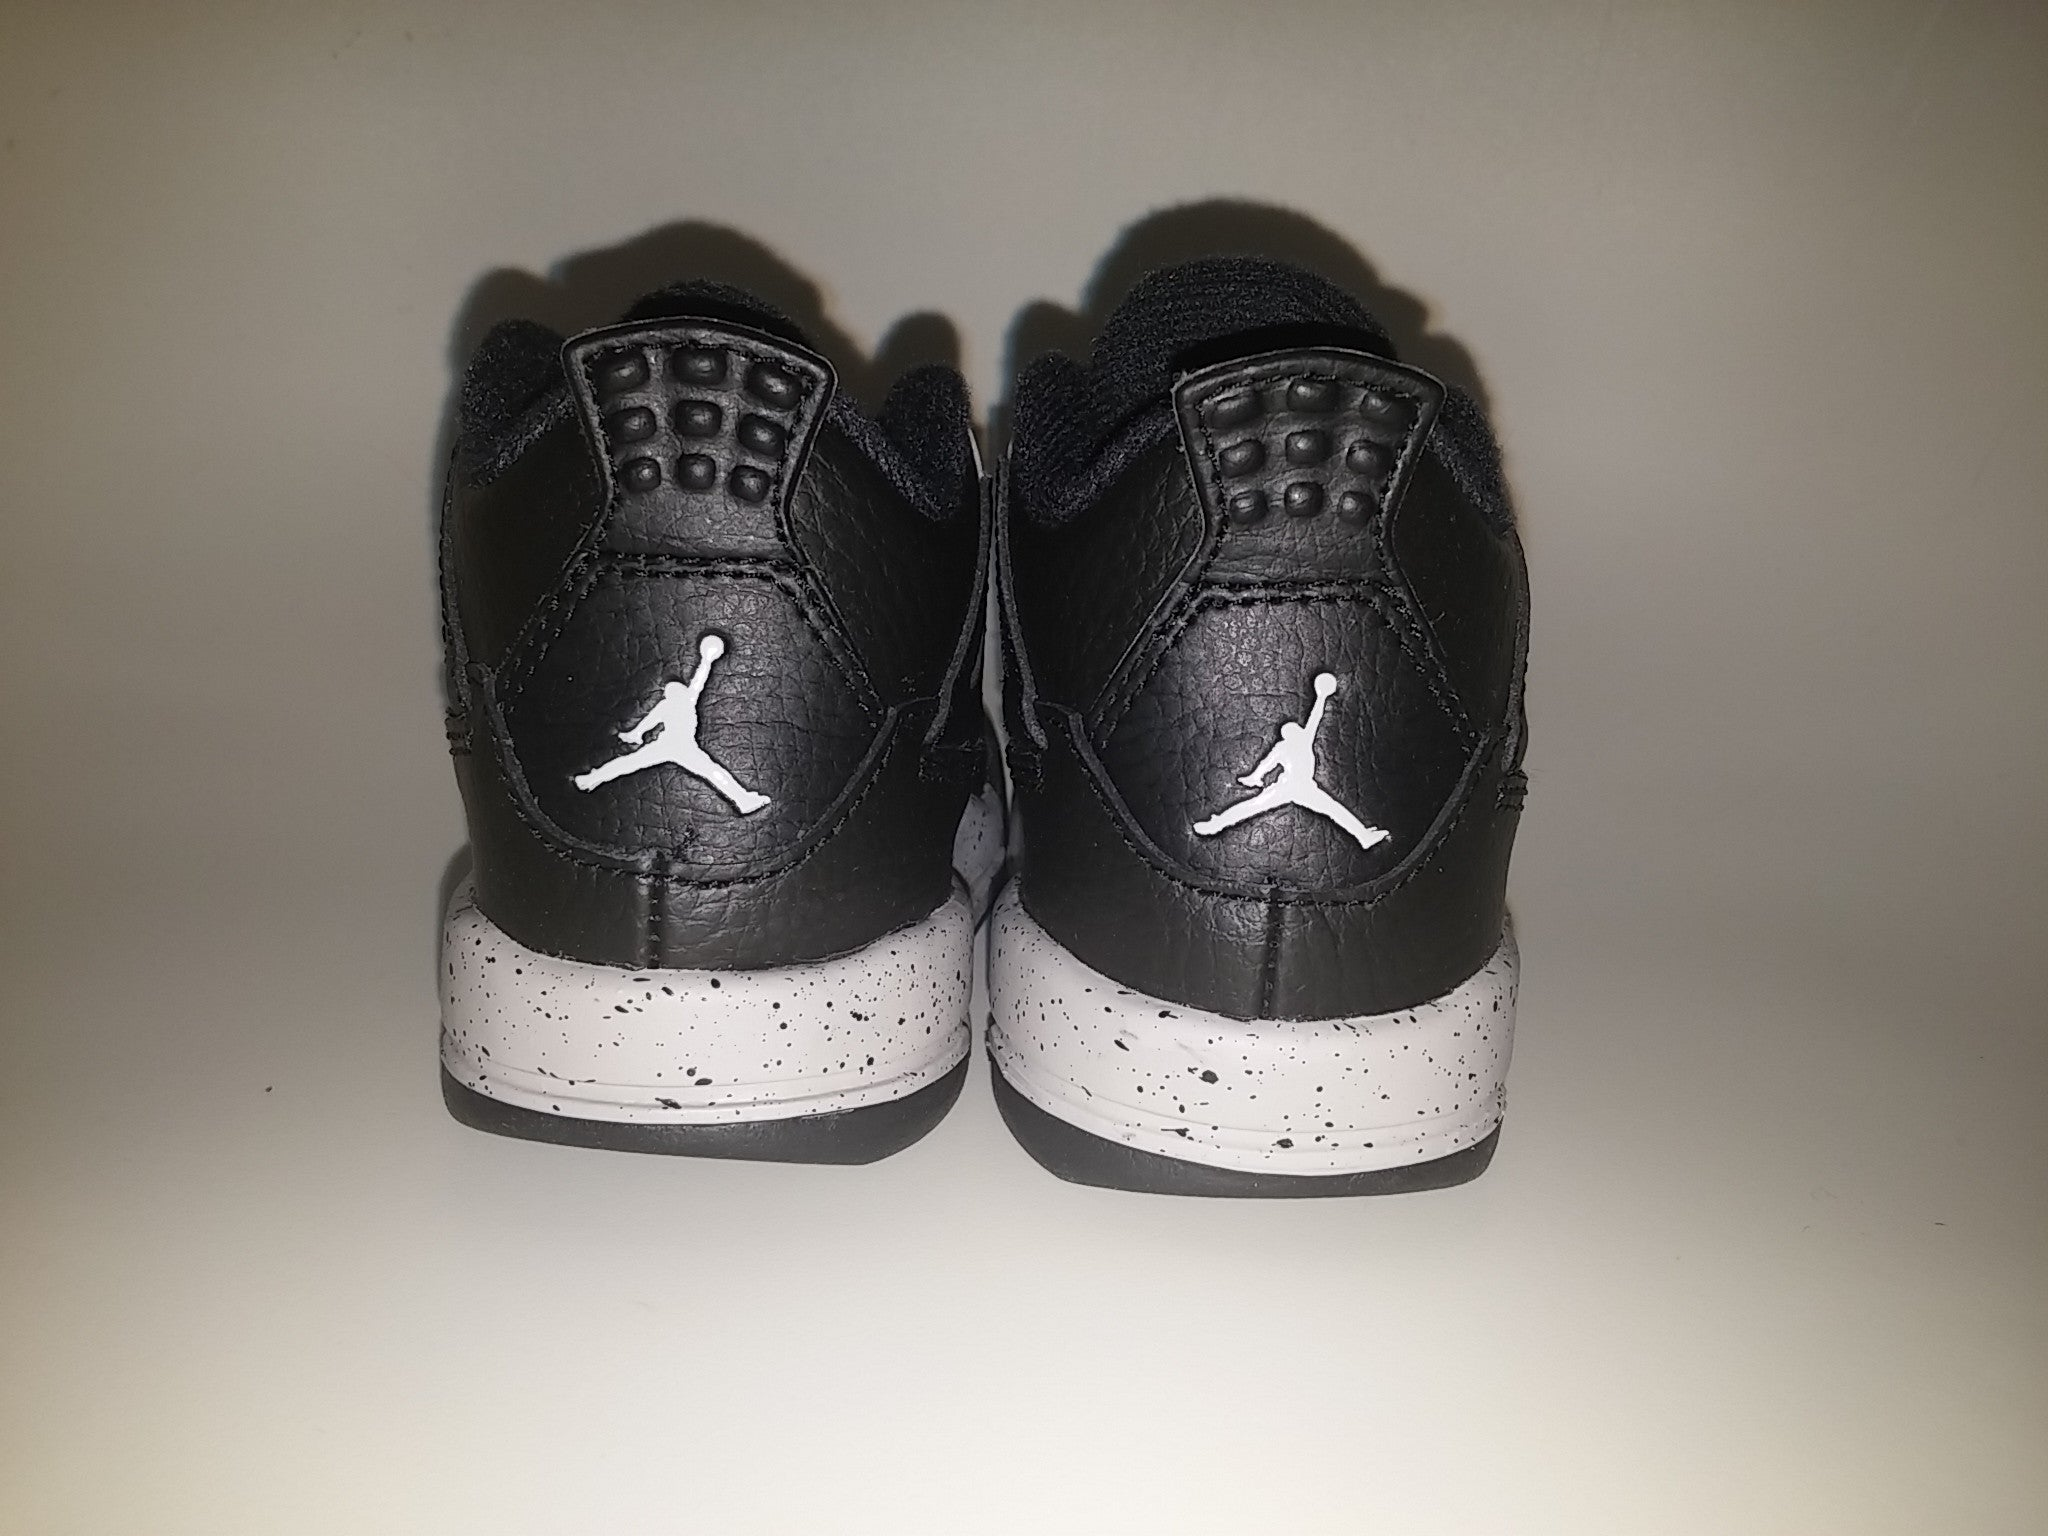 ab48e5ddacdefb NIKE AIR BABY JORDAN 4 RETRO BT TD OREO 707432-003 toddler ...